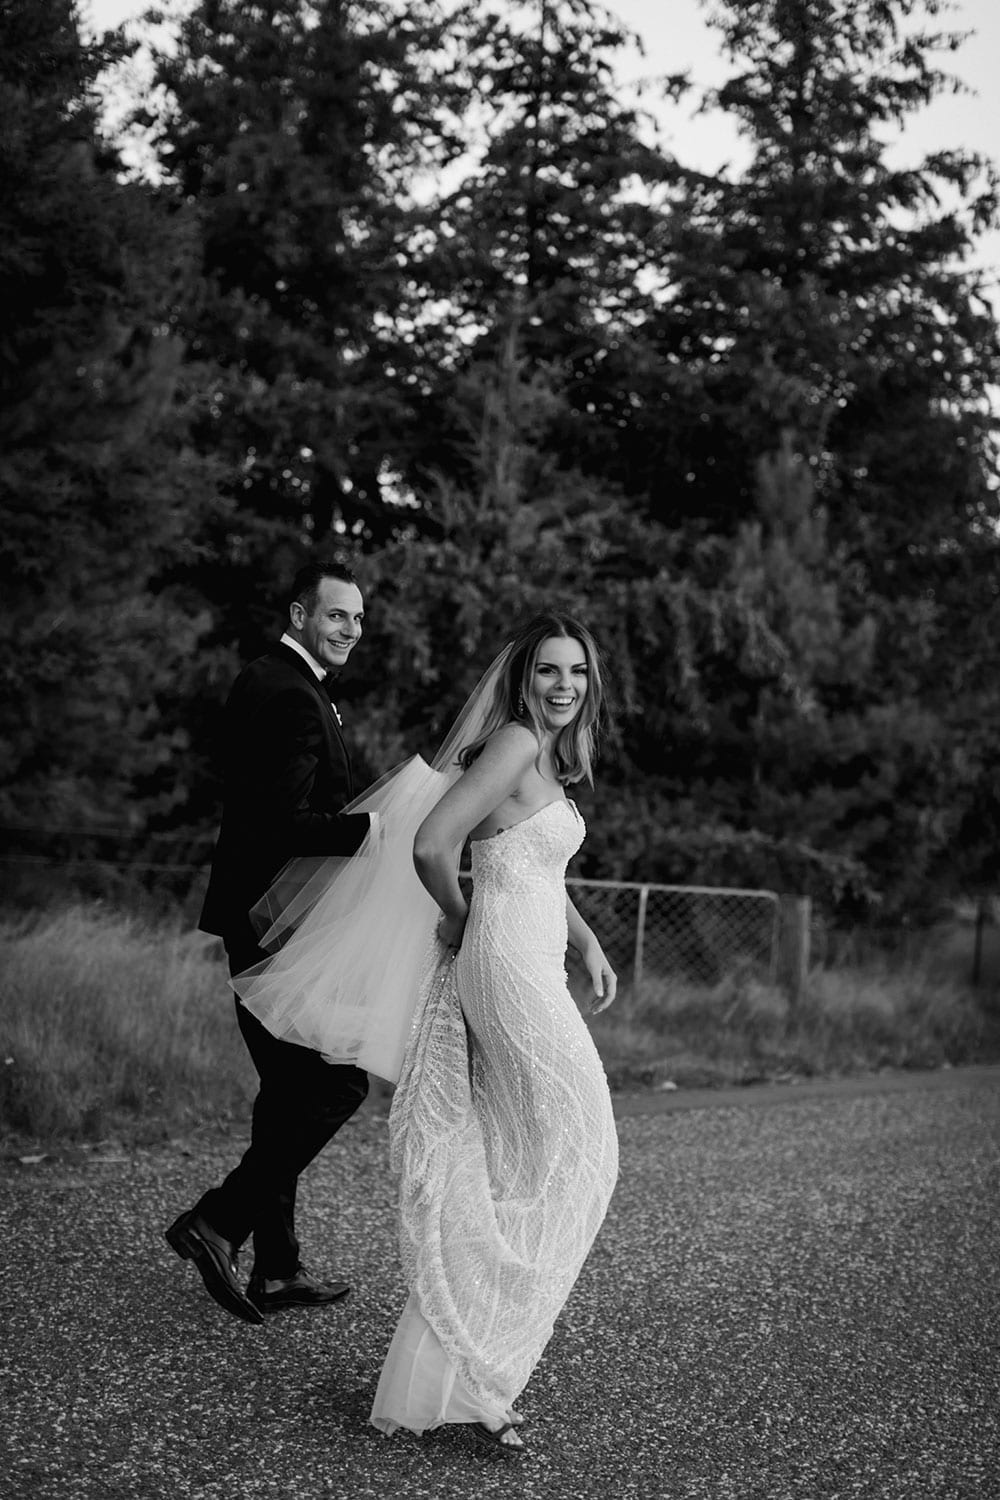 Vinka Design Features Real Weddings - bride in custom made gown, a combination of our Indi wedding dress with added beading appliqued and sewn by hand, over the top of a nude semi sheer base. Walking with groom outdoors in black and white